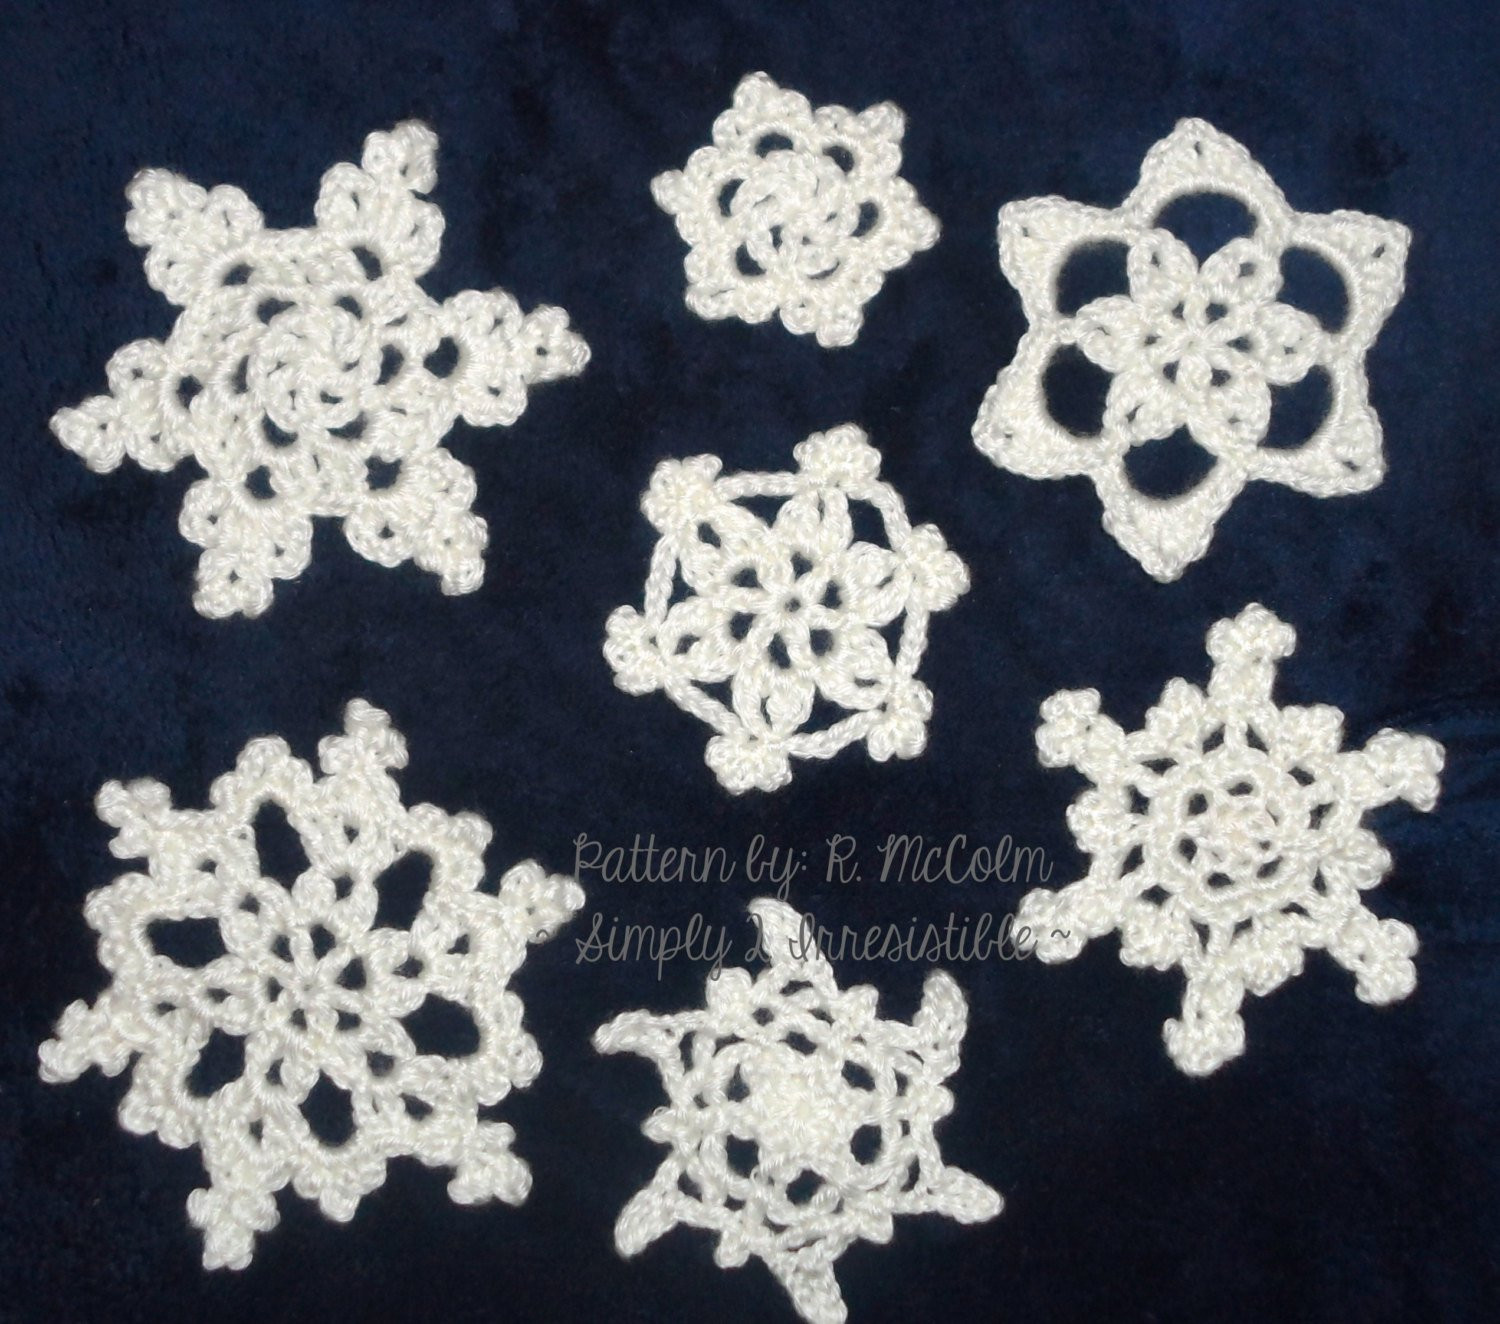 Crochet Snowflake Pattern Luxury Snowflakes Crochet Patterns Holiday Christmas Winter Of Wonderful 50 Photos Crochet Snowflake Pattern